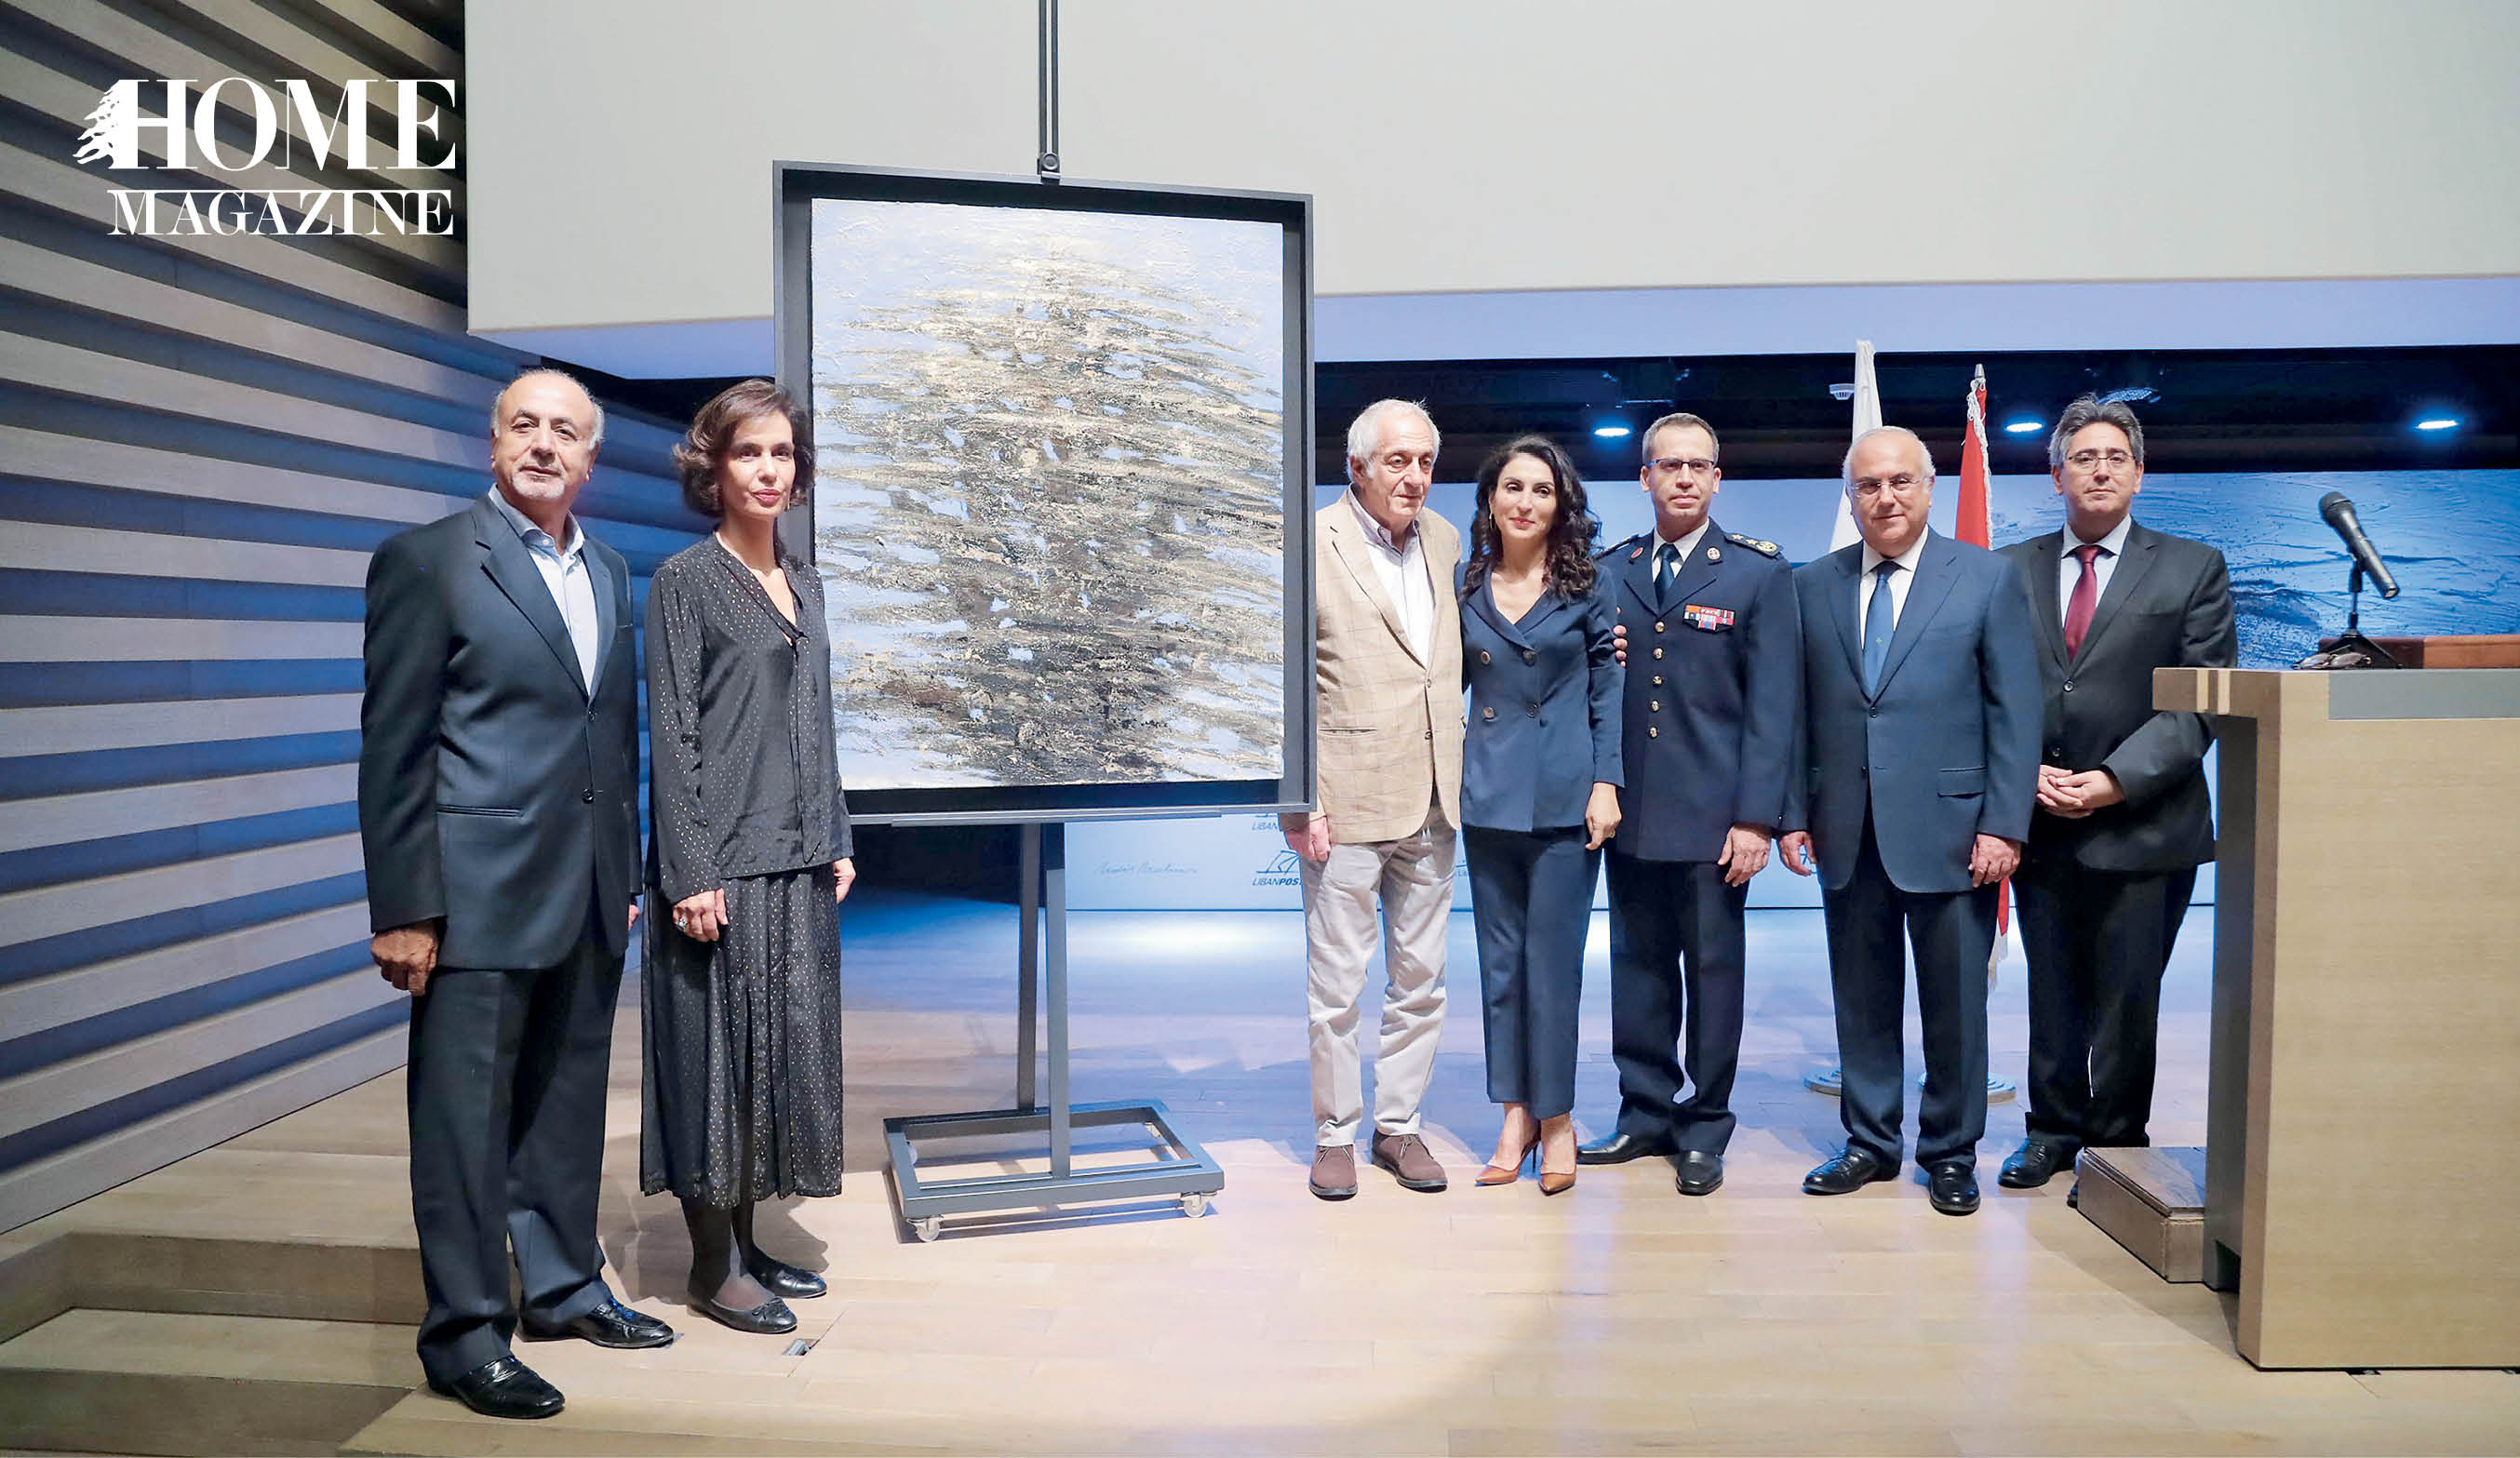 Men and women standing next to a painting